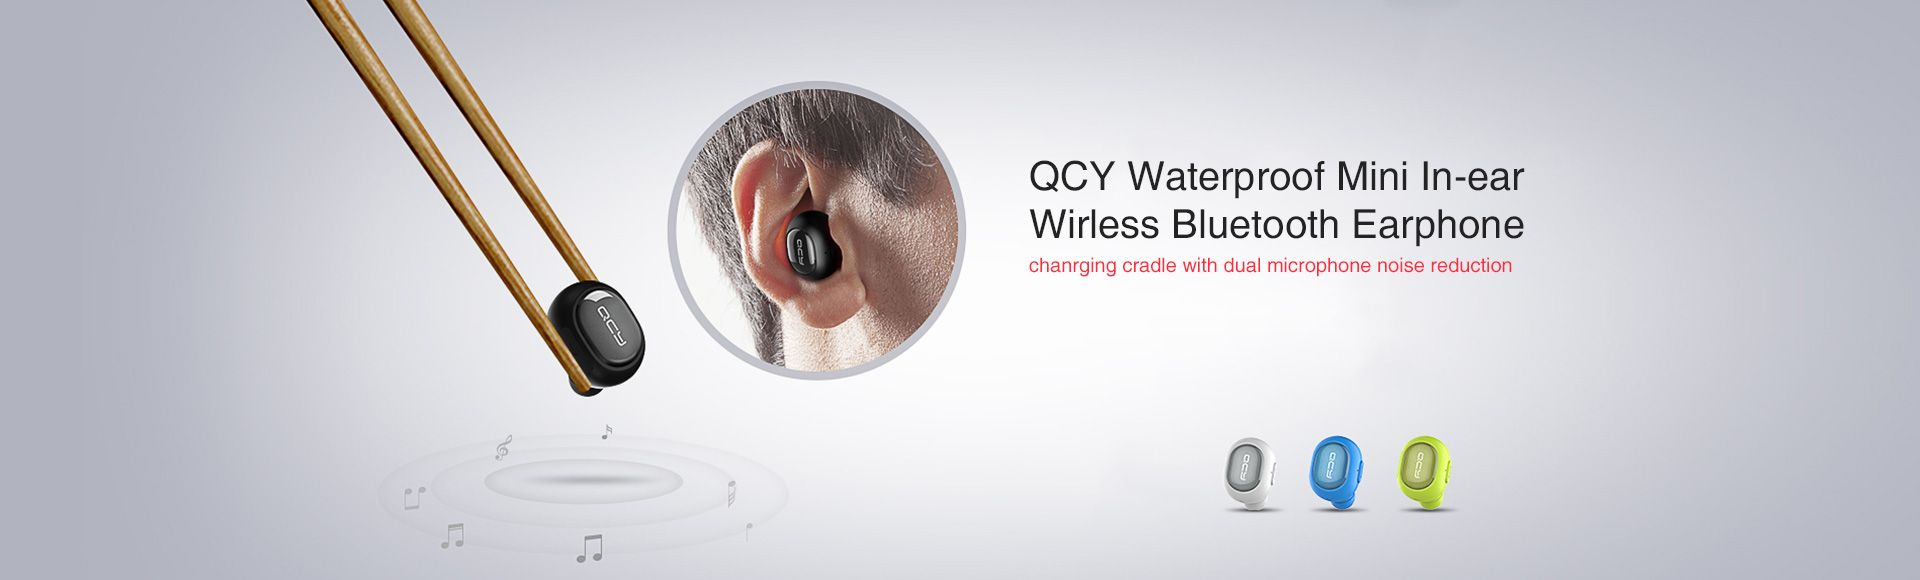 QCY Q26 Wireless Headset  - Ultra Mini Size Bluetooth 4.1 with Mic for iPhone iPad Android Smart Phone Windows Phone